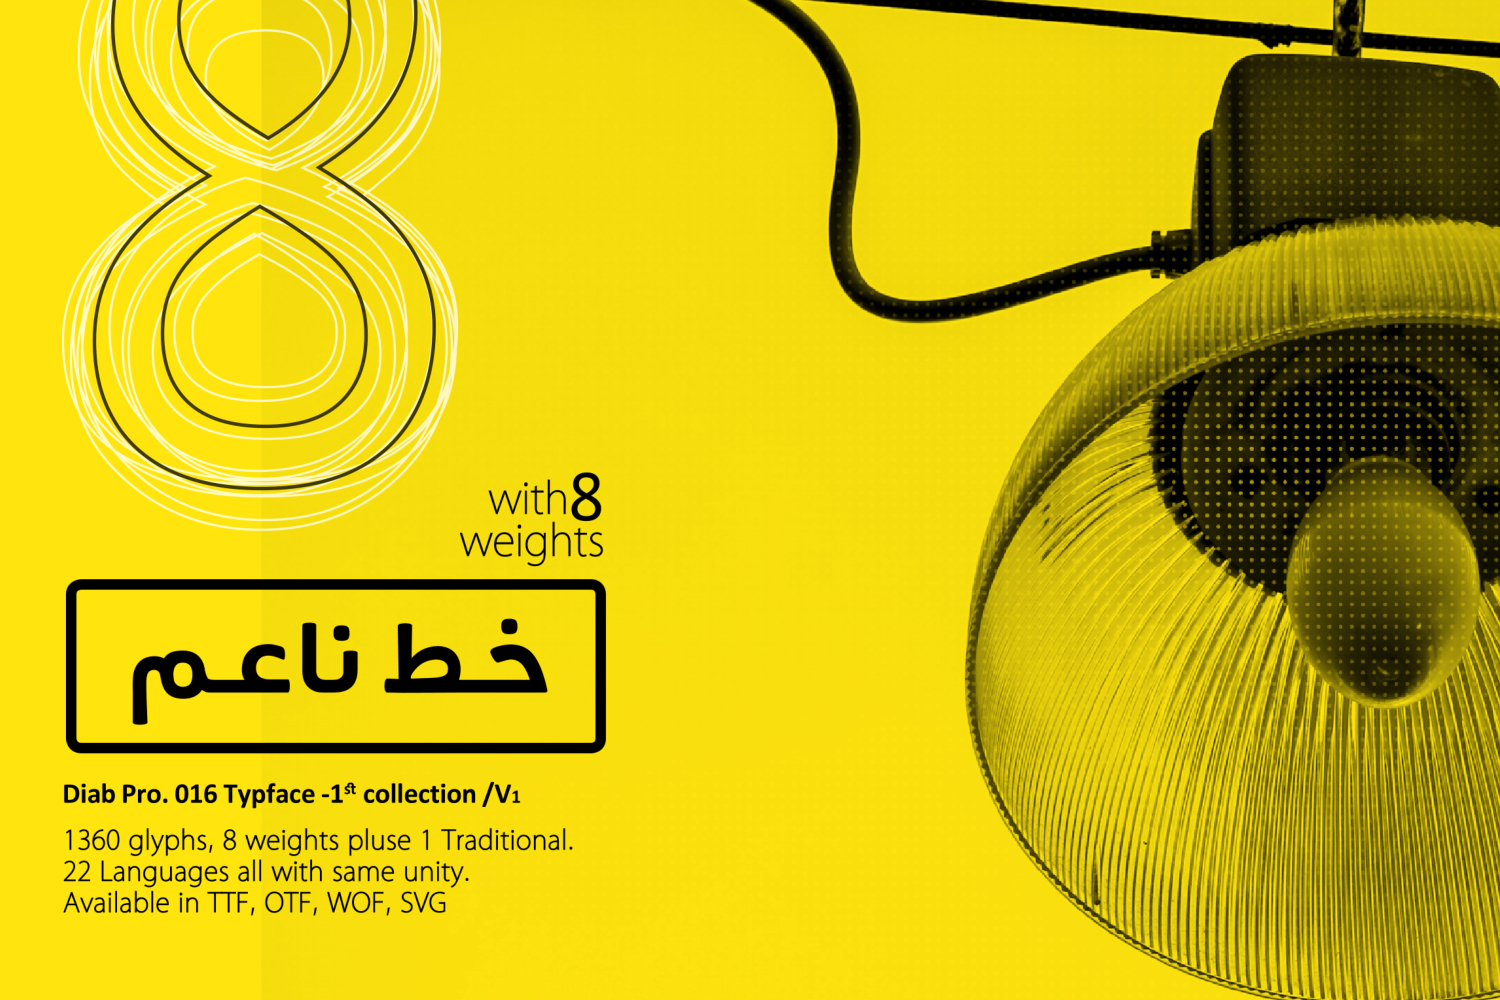 Diab Orient 018 Collection/18 font example image 1